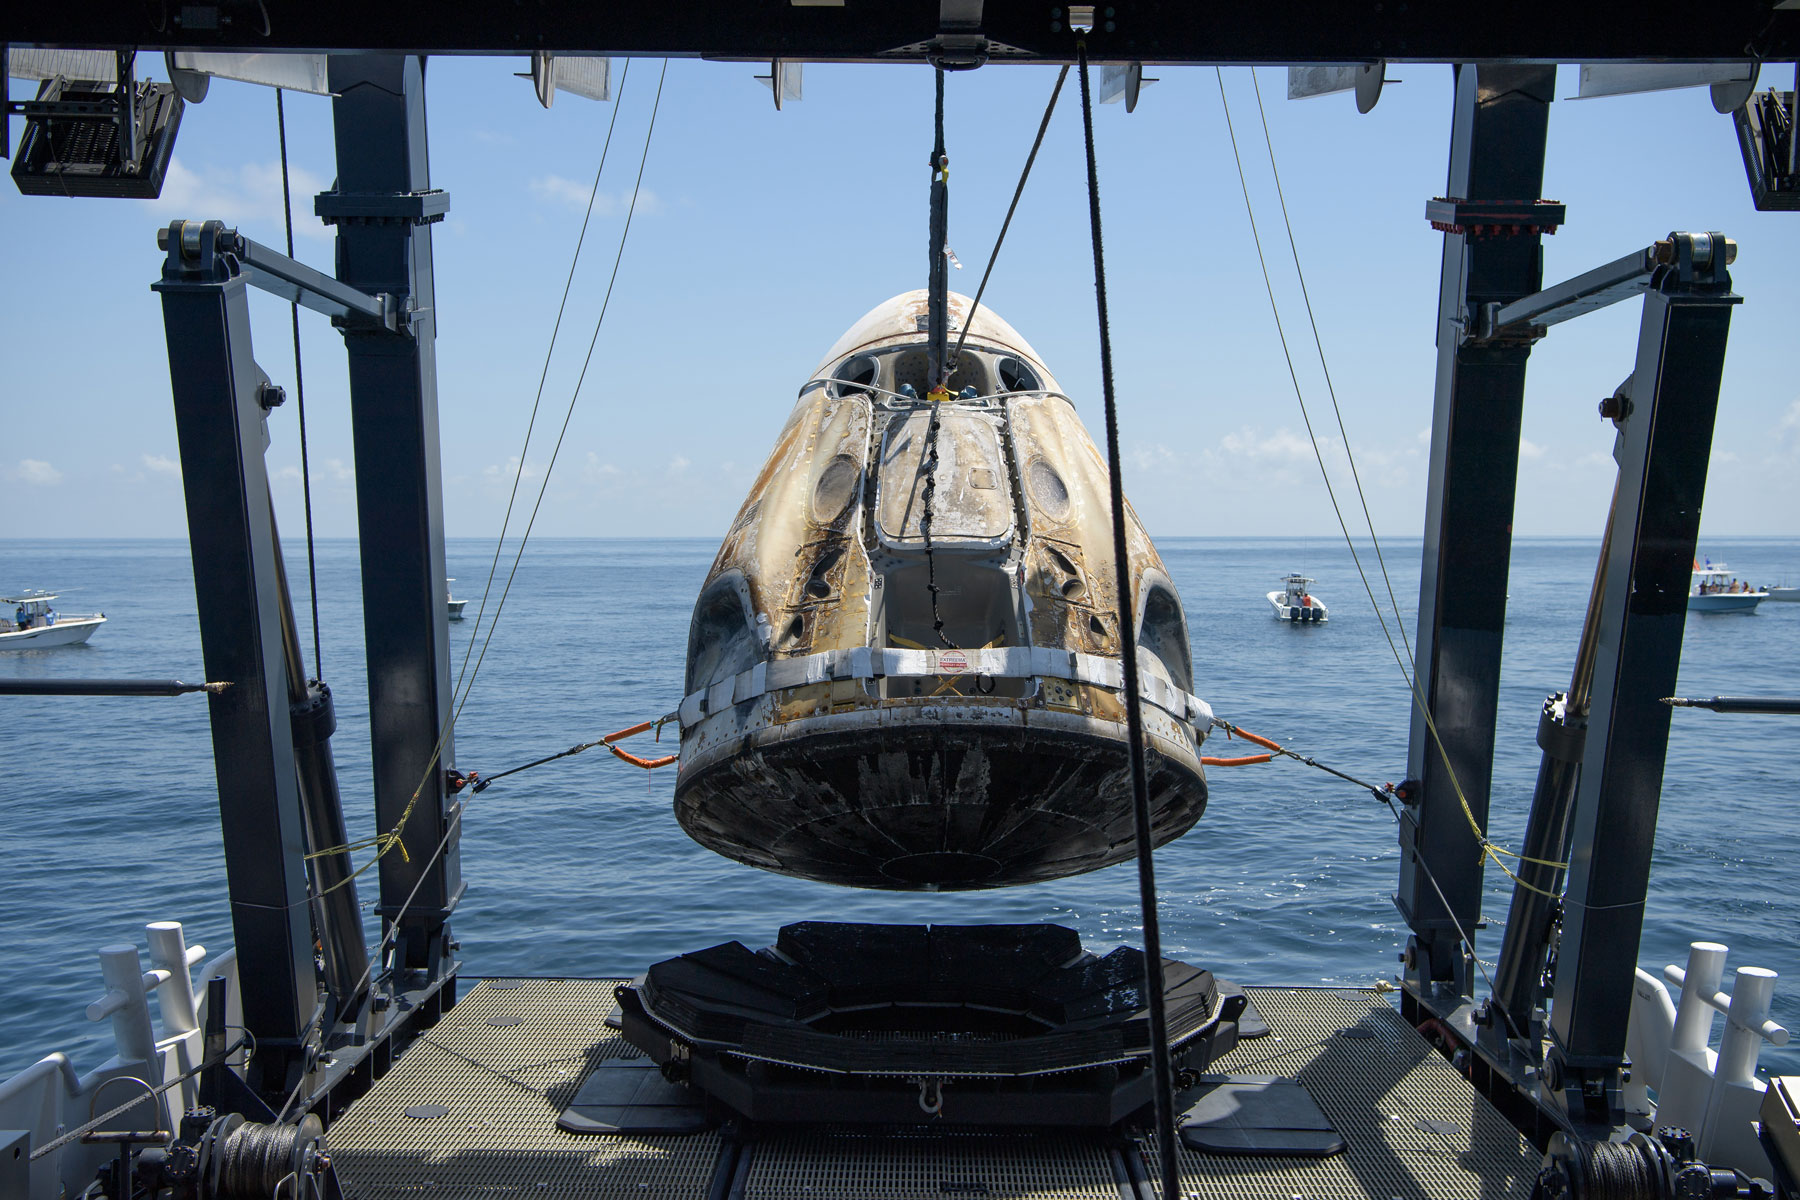 SpaceX's Crew Dragon capsule lifted out of the water